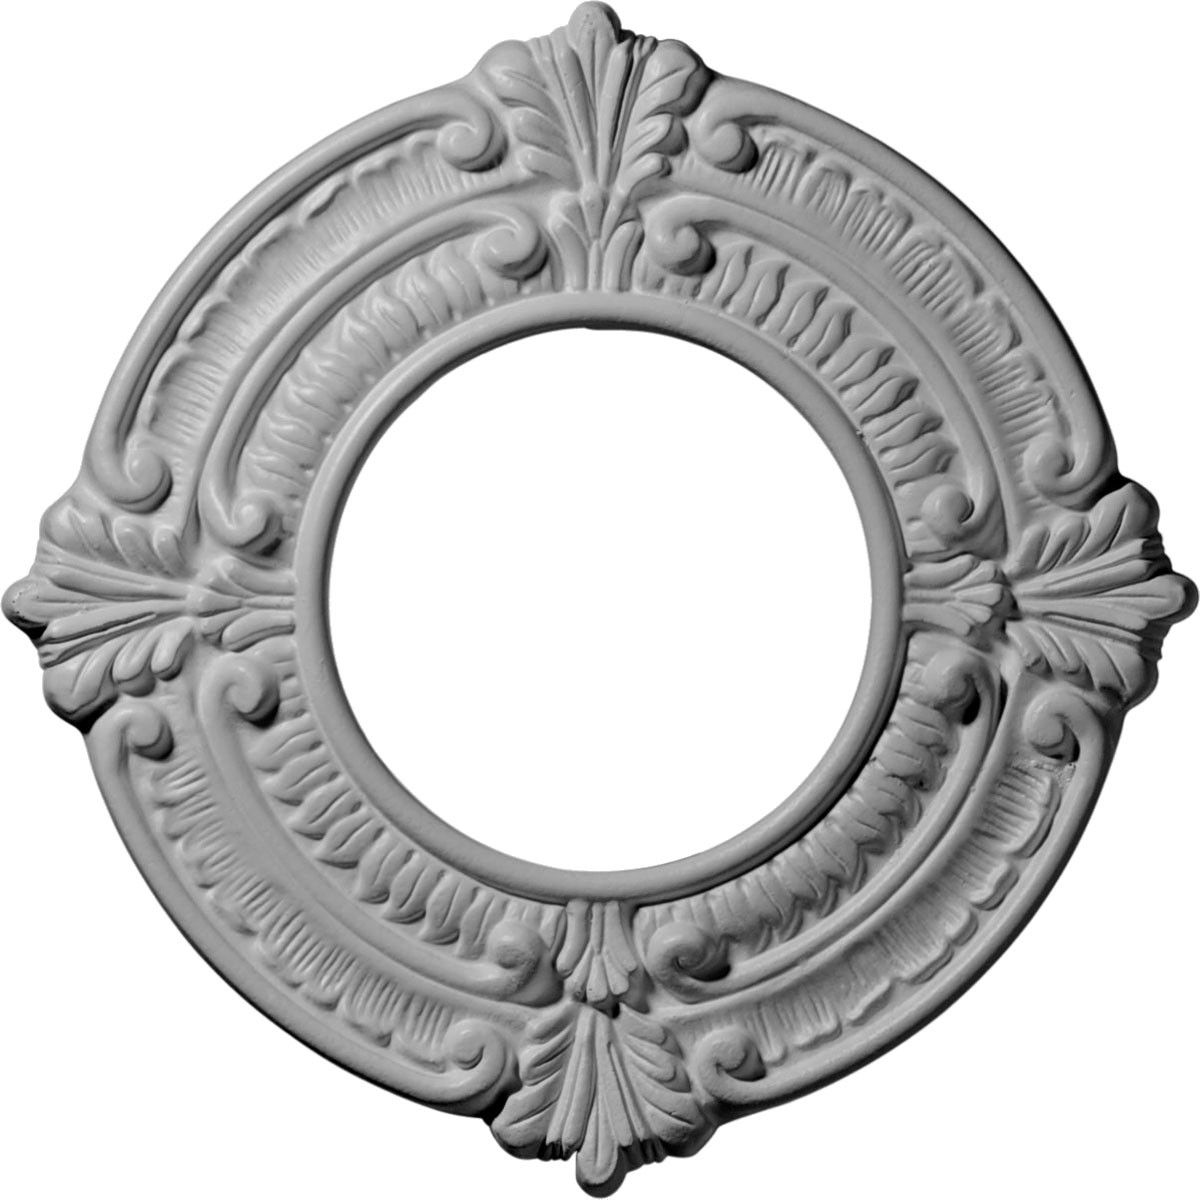 """EM-CM09BN - 9""""OD x 4 1/8""""ID x 5/8""""P Benson Ceiling Medallion (Fits Canopies up to 4 1/8"""")"""